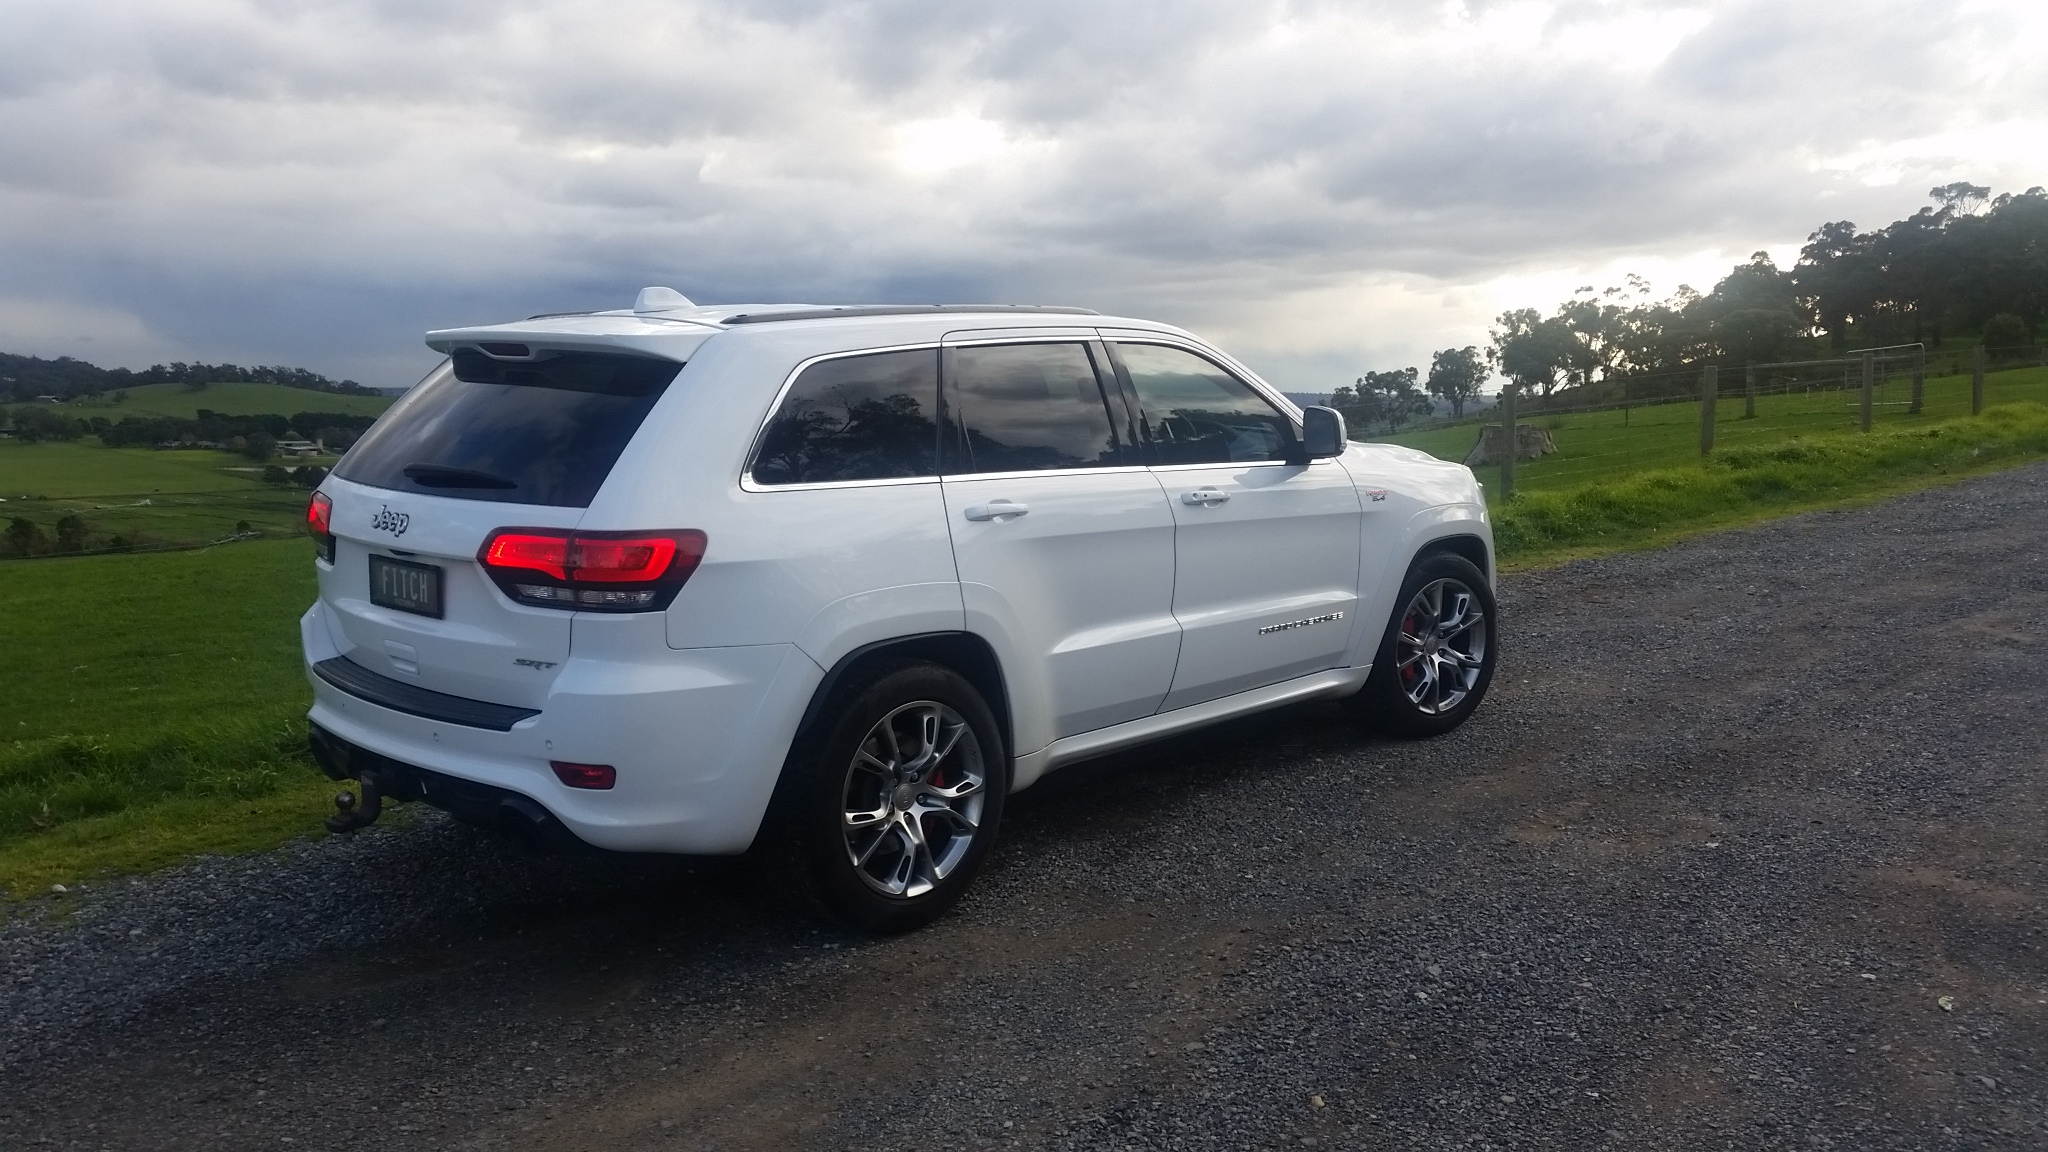 2014 jeep grand cherokee srt 8 4x4 wk my14 car sales vic melbourne 2943451